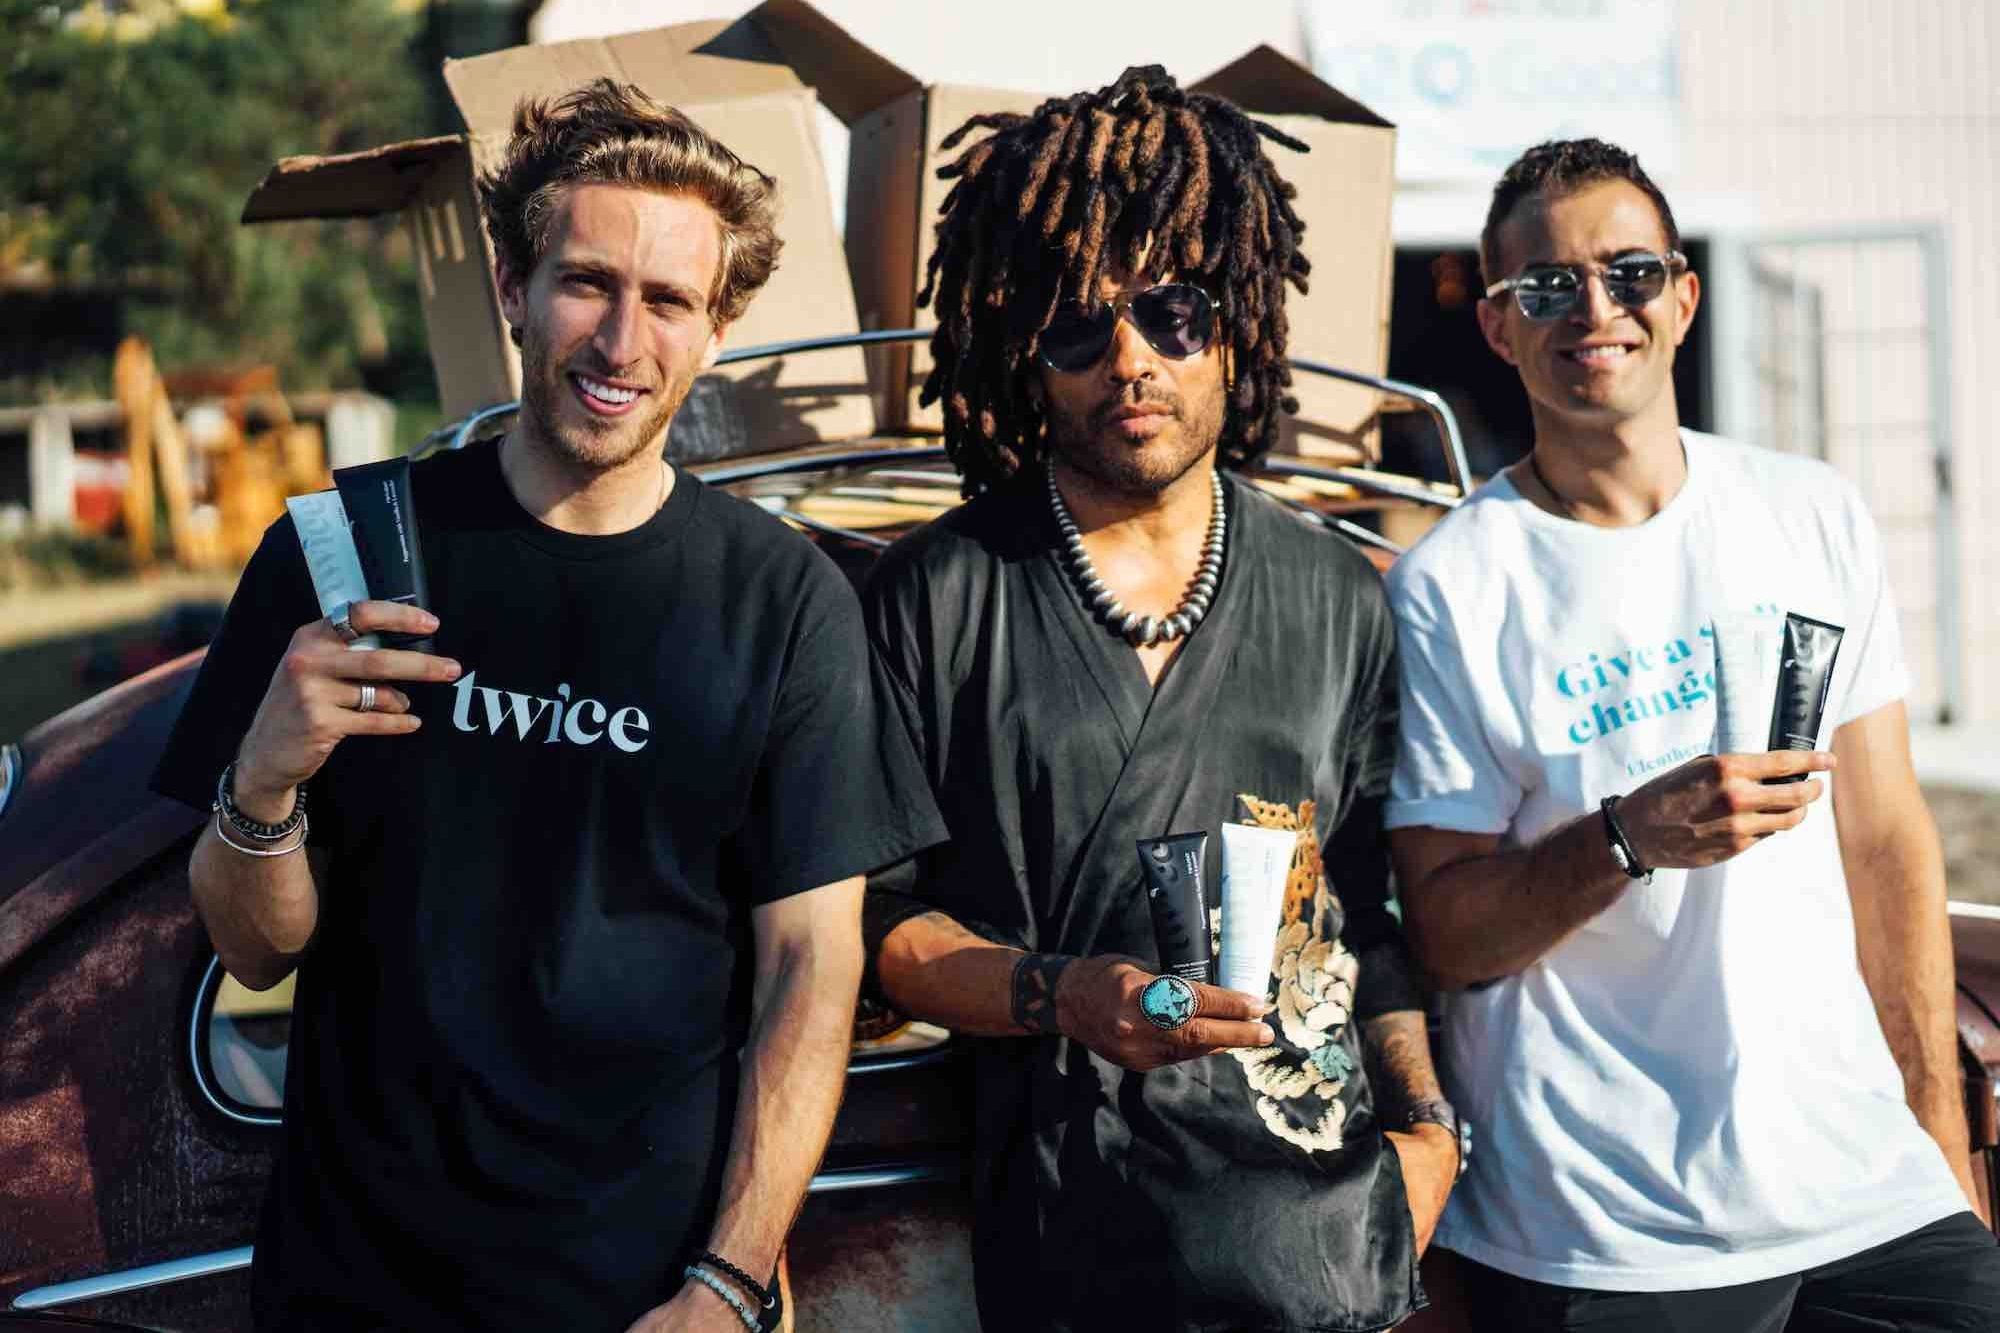 entrepreneur.com - Dan Bova - Here's How Lenny Kravitz Creates Something Out of Nothing in Business and Art